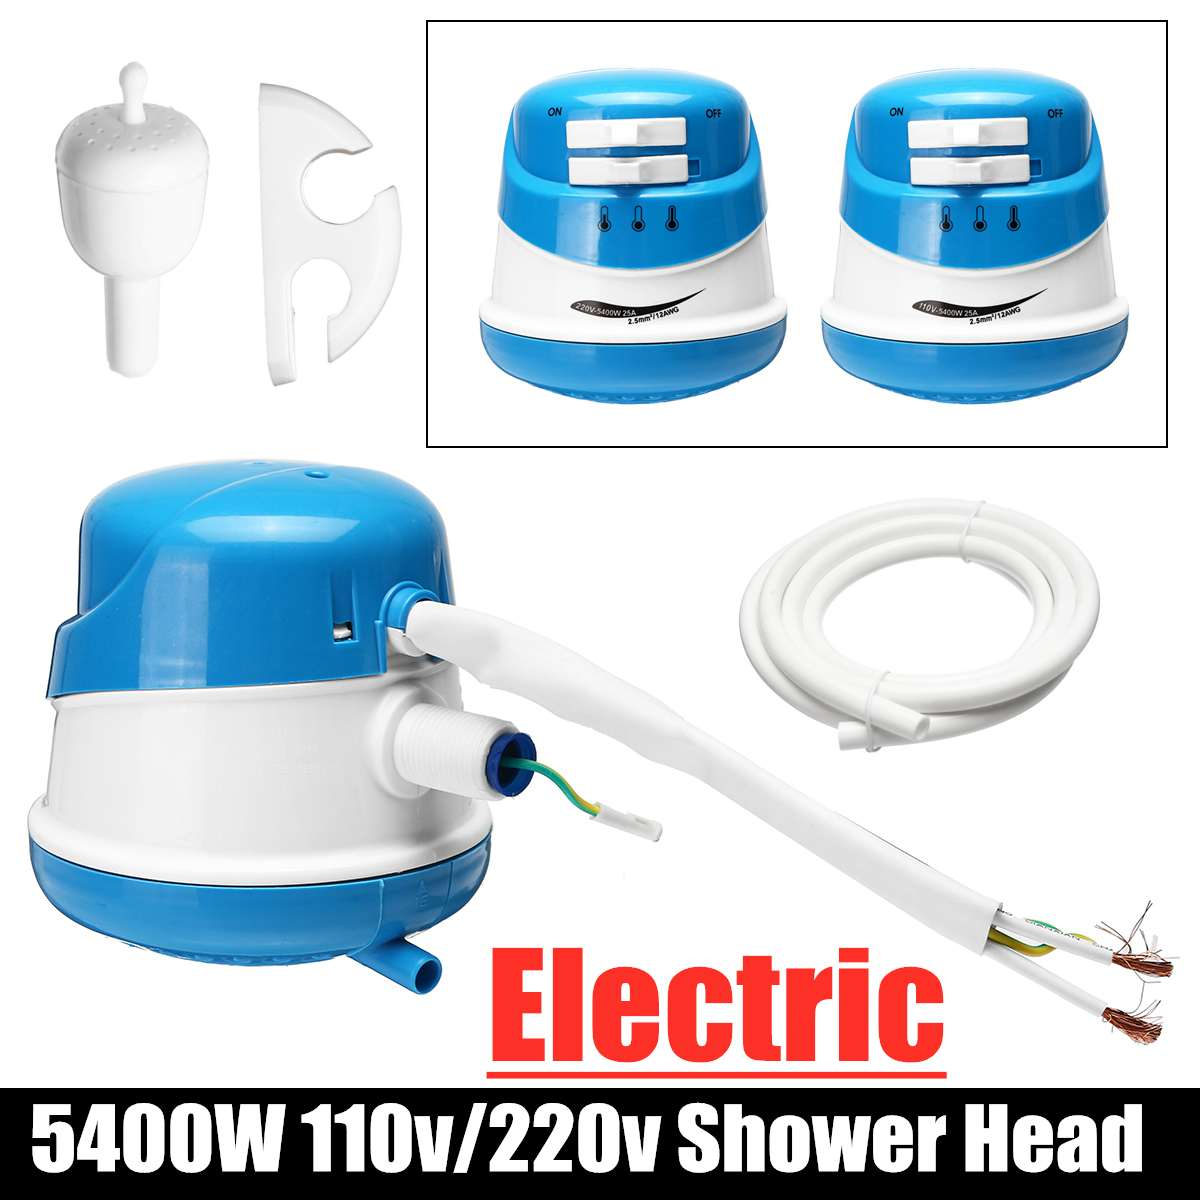 5400W Hot Water Heater Shower Heater Faucet Instant Hot Water Tap Shower Tankless Electric Faucet Instantaneous Bathroom